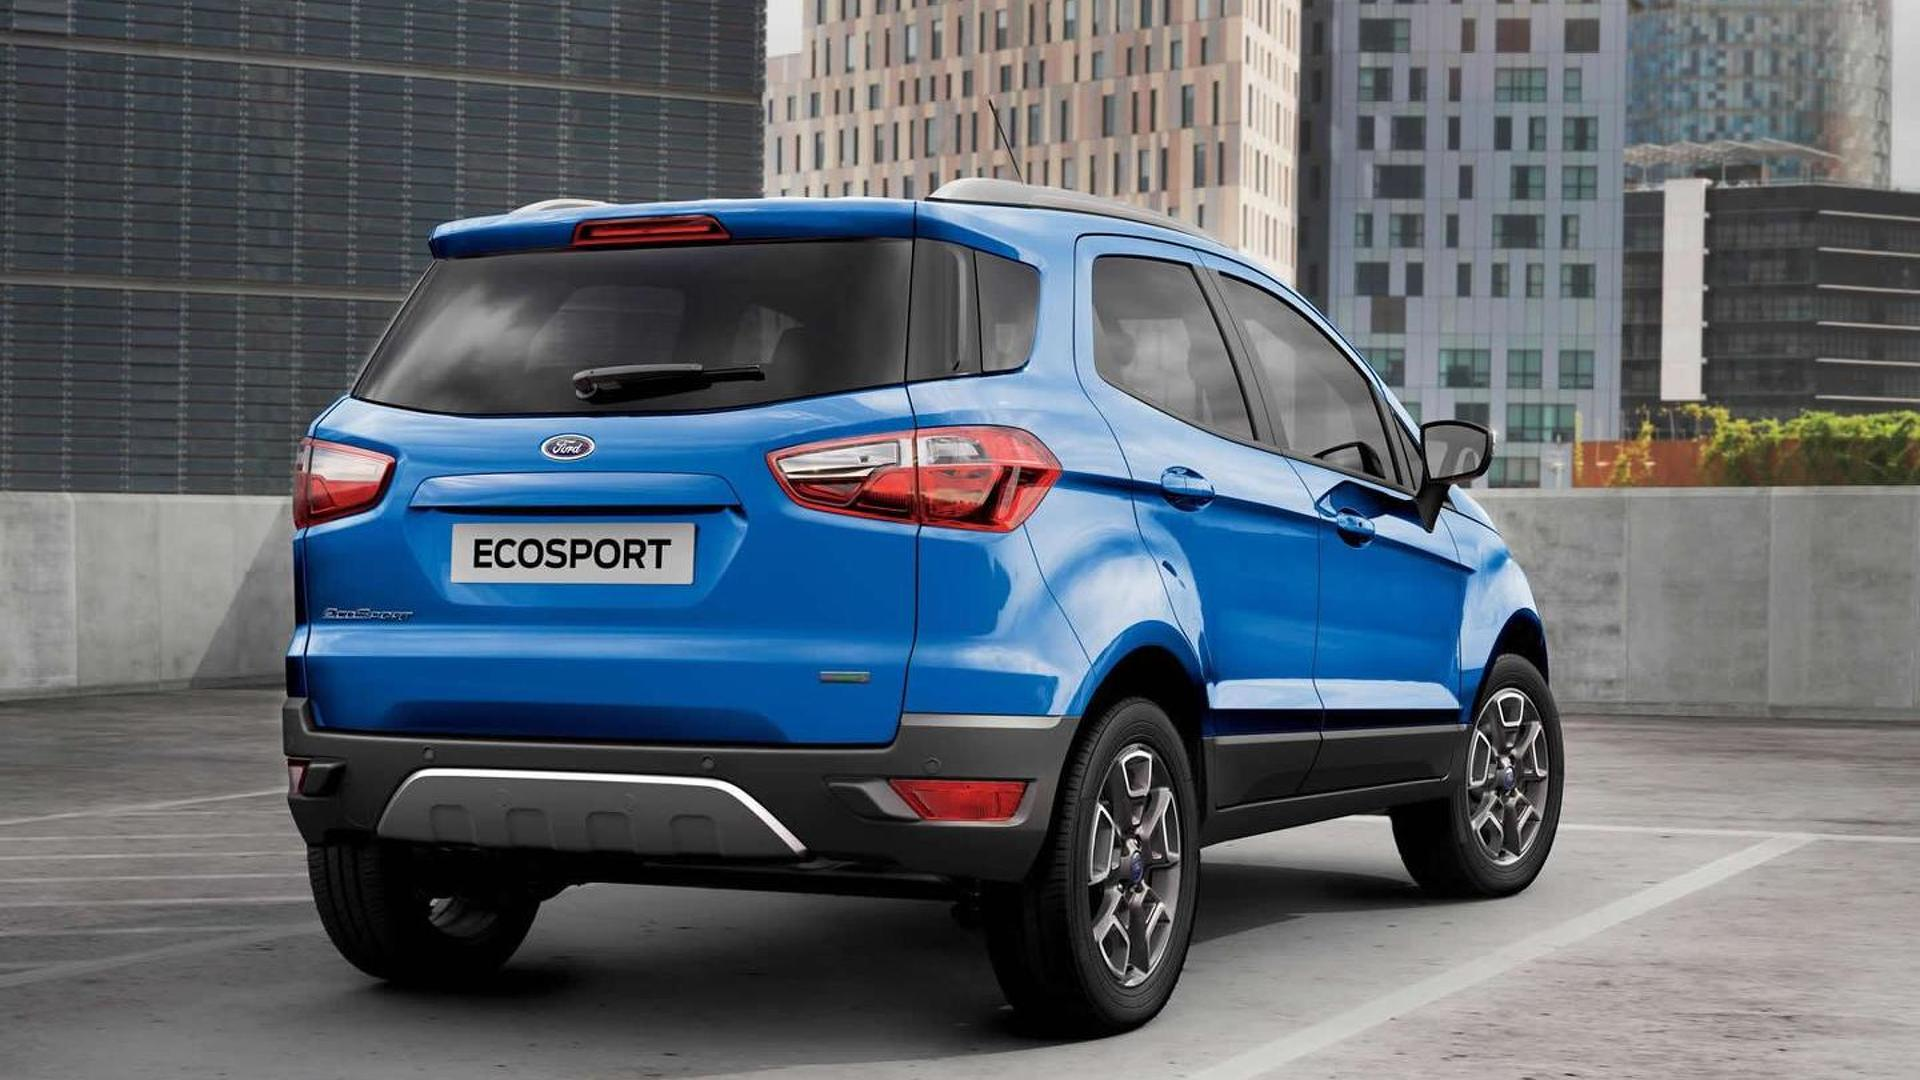 Ford EcoSport facelift sans rear-mounted spare wheel priced from £14,245